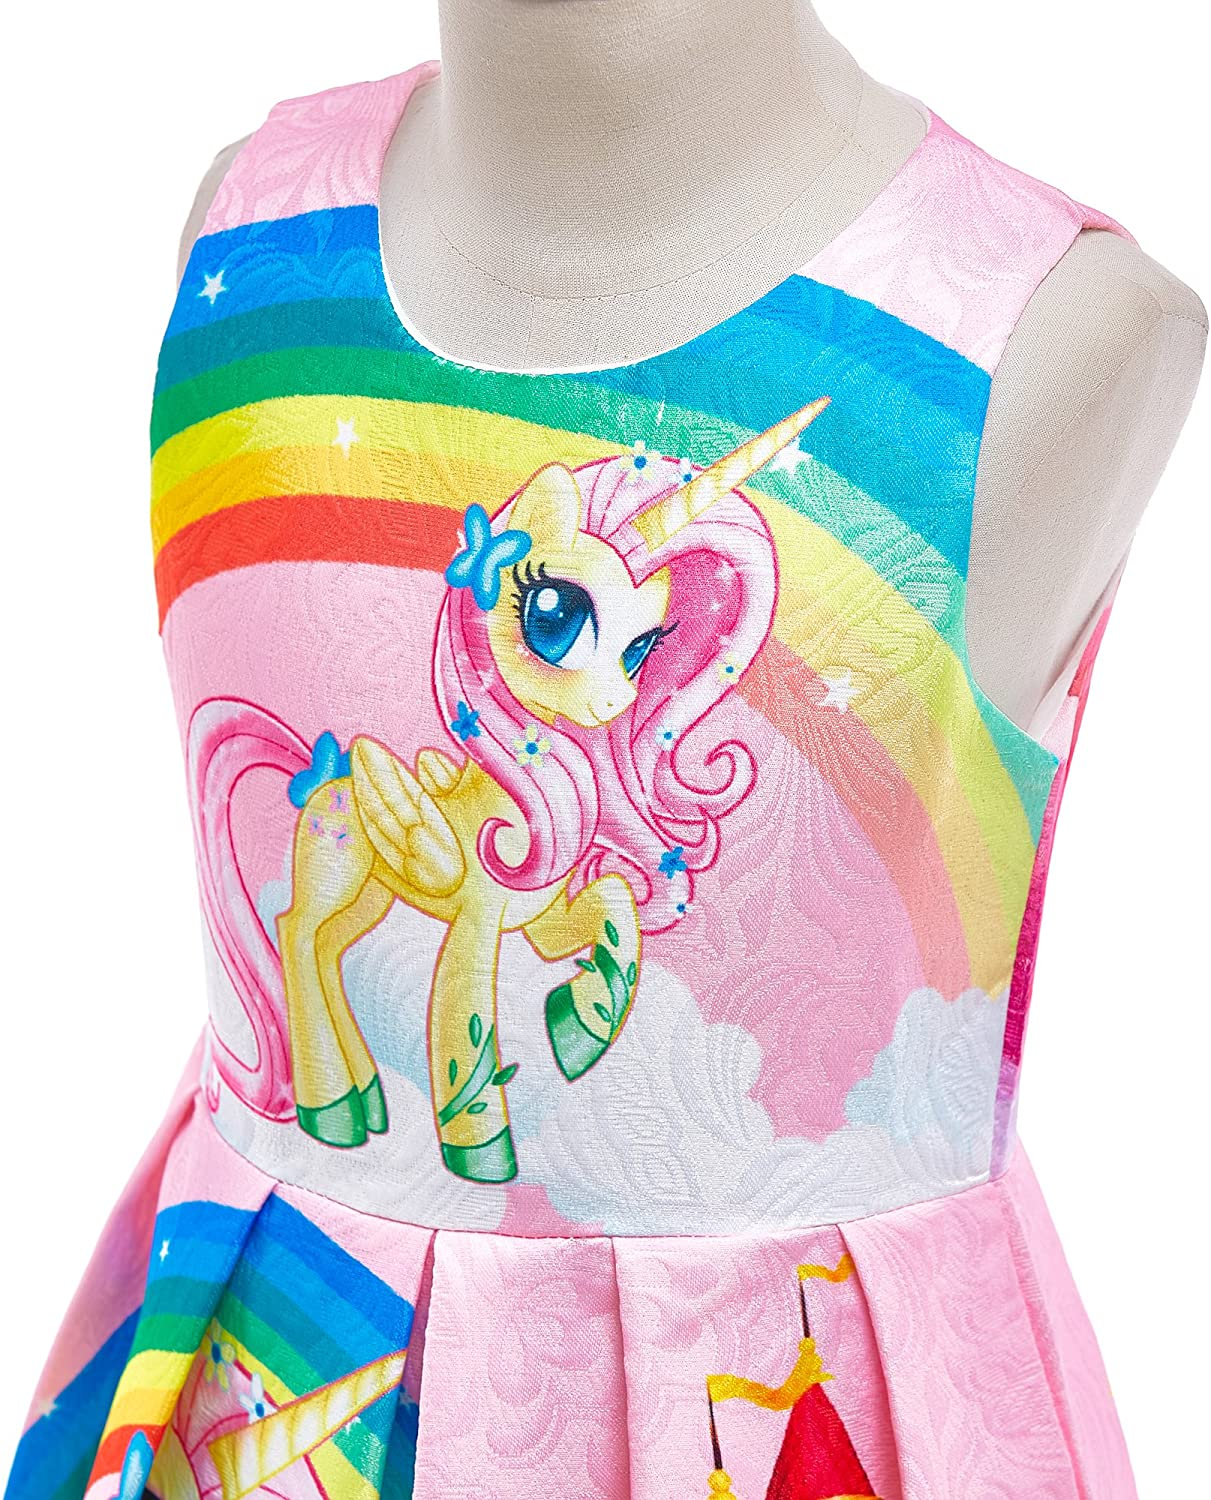 Lito Angels Little Girls Rainbow Unicorn Dresses Costume Fancy Dress Up Outfit Halloween Party Size 2-3 Years Blue C